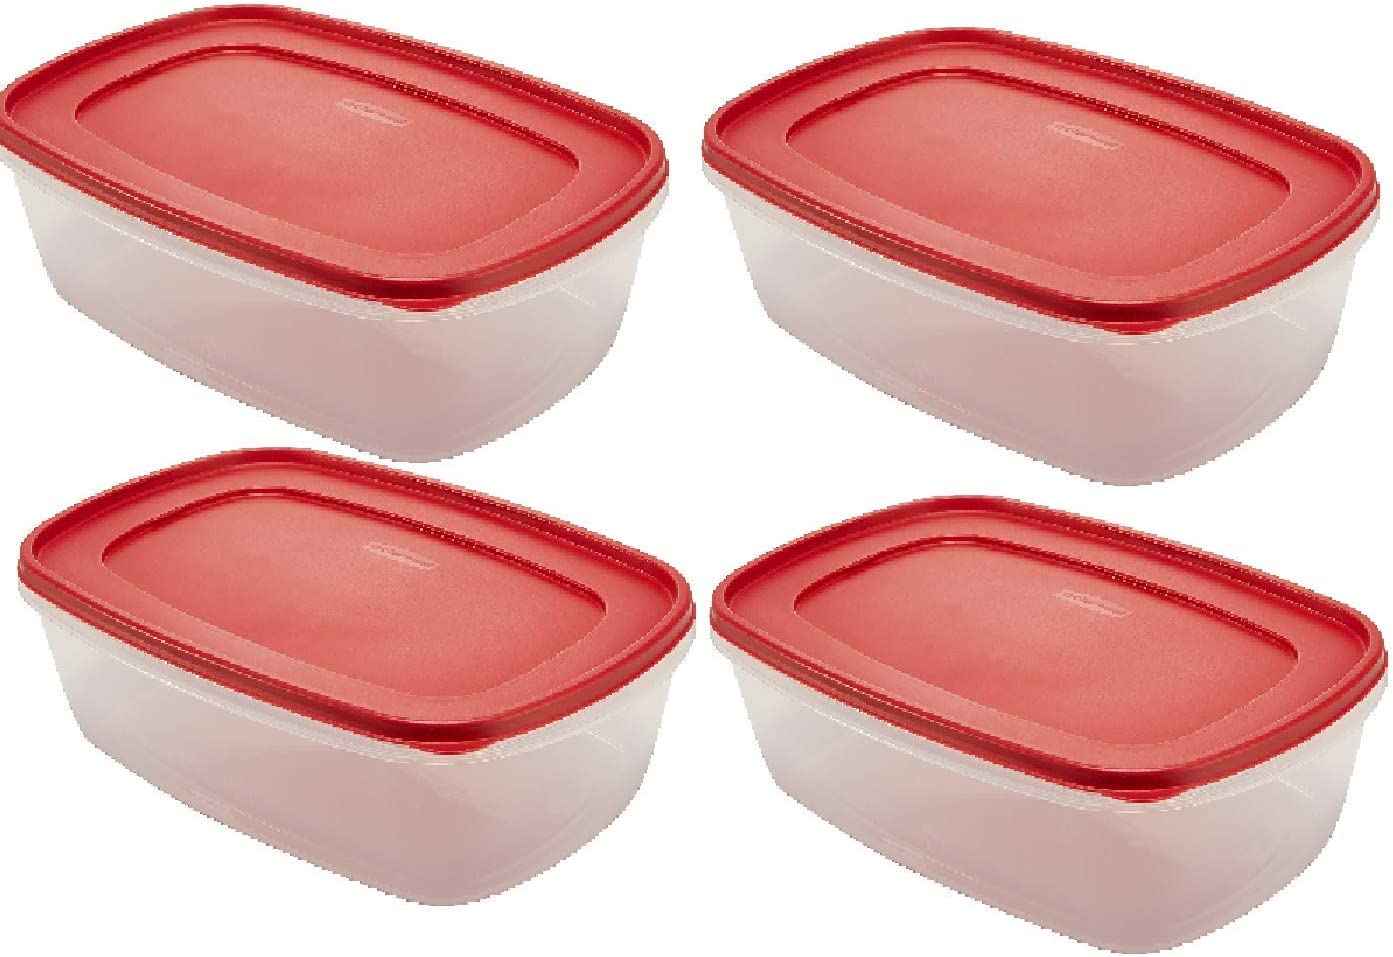 Rubbermaid 7J77 Easy Find Lid Rectangle 40-Cup 2.5 gallon Food Storage Container (Pack of 4)